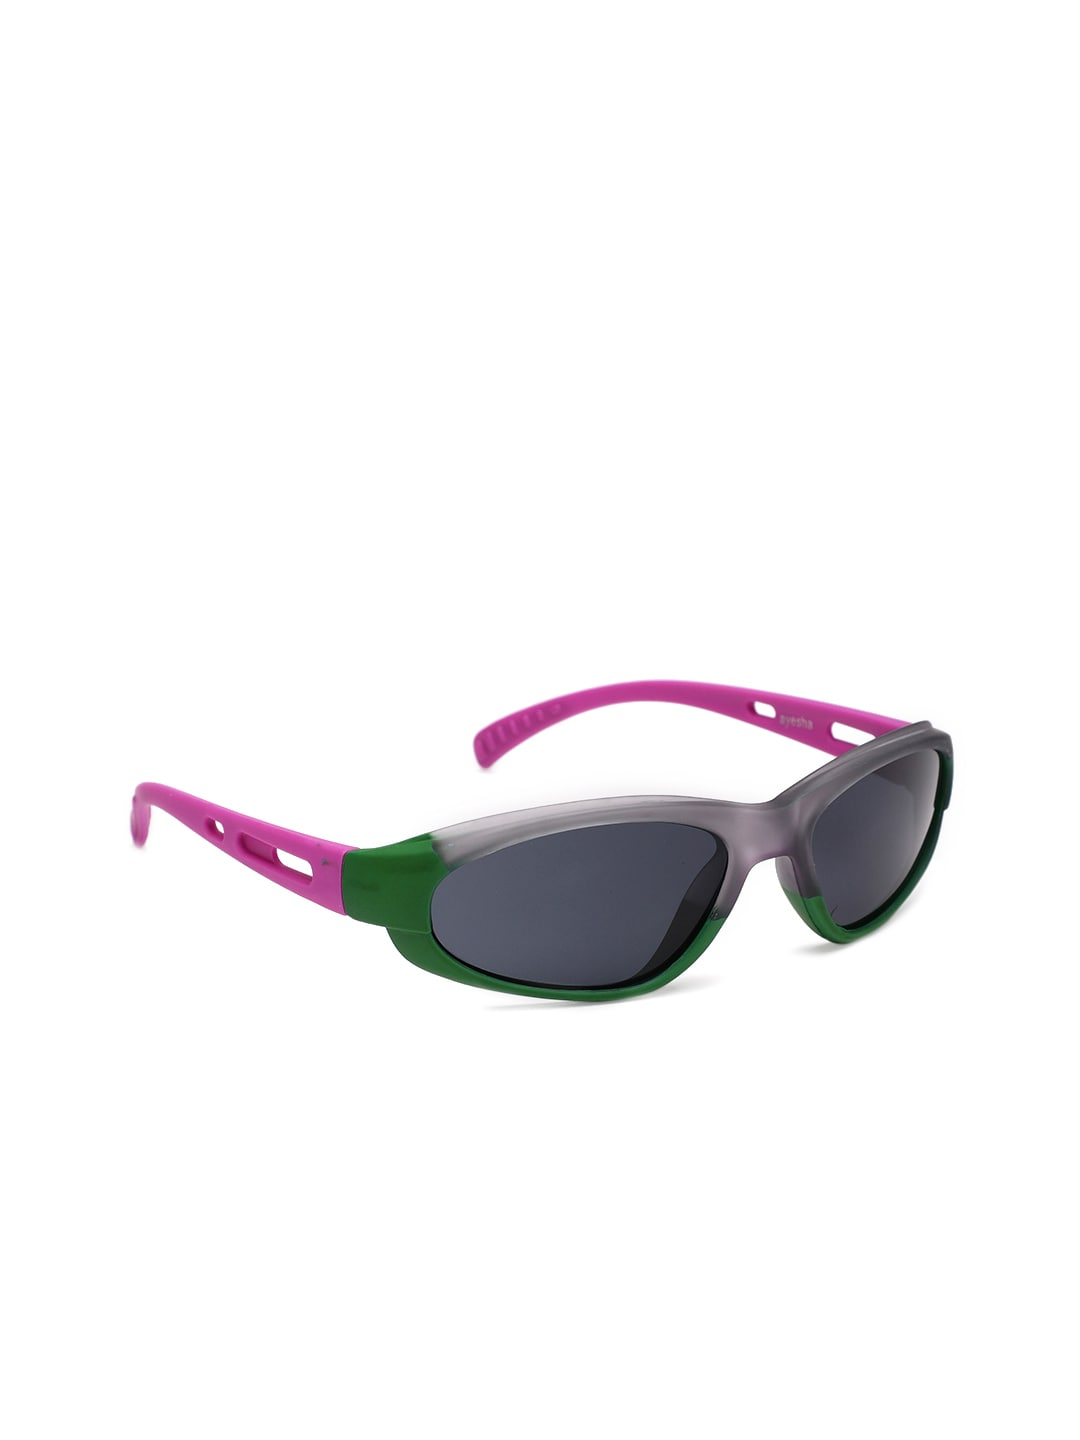 a09812c5cc9b0 Sunglasses - Buy Sunglasses for Men and Women Online in India